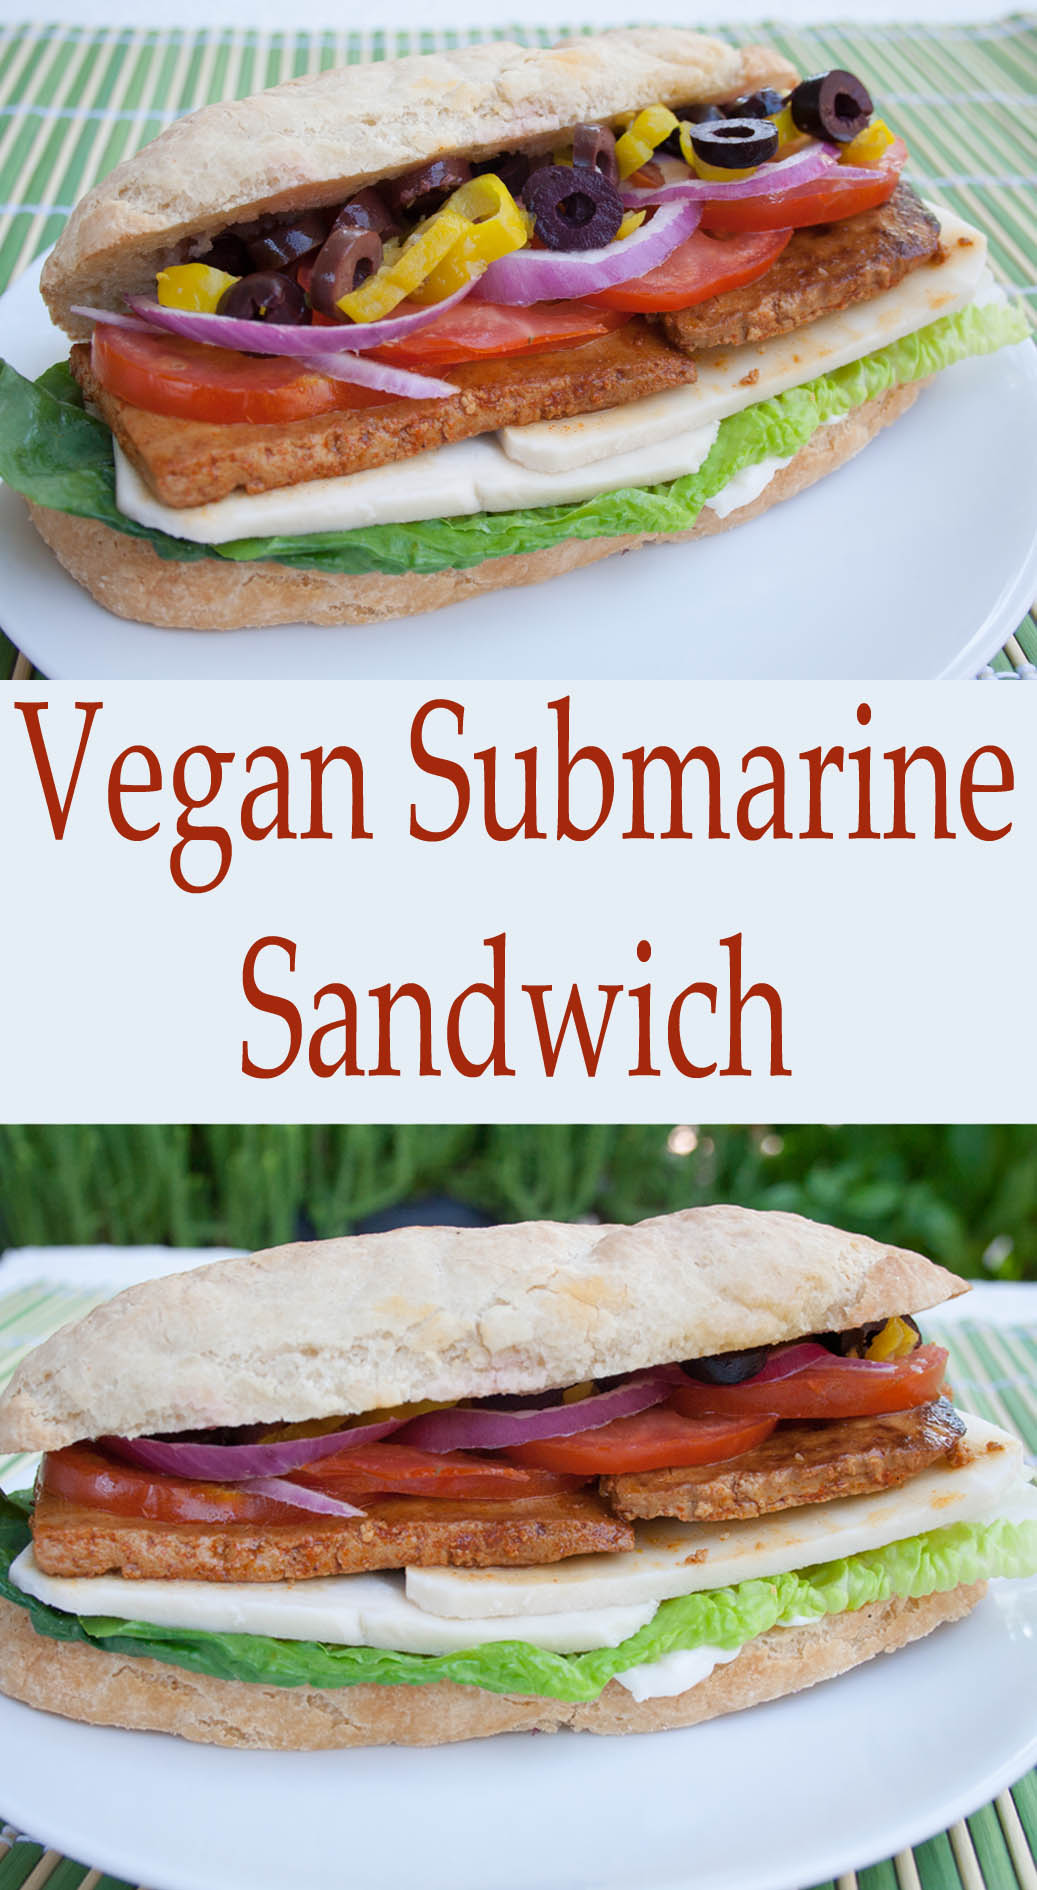 Vegan Submarine Sandwich collage photo with text in the middle.